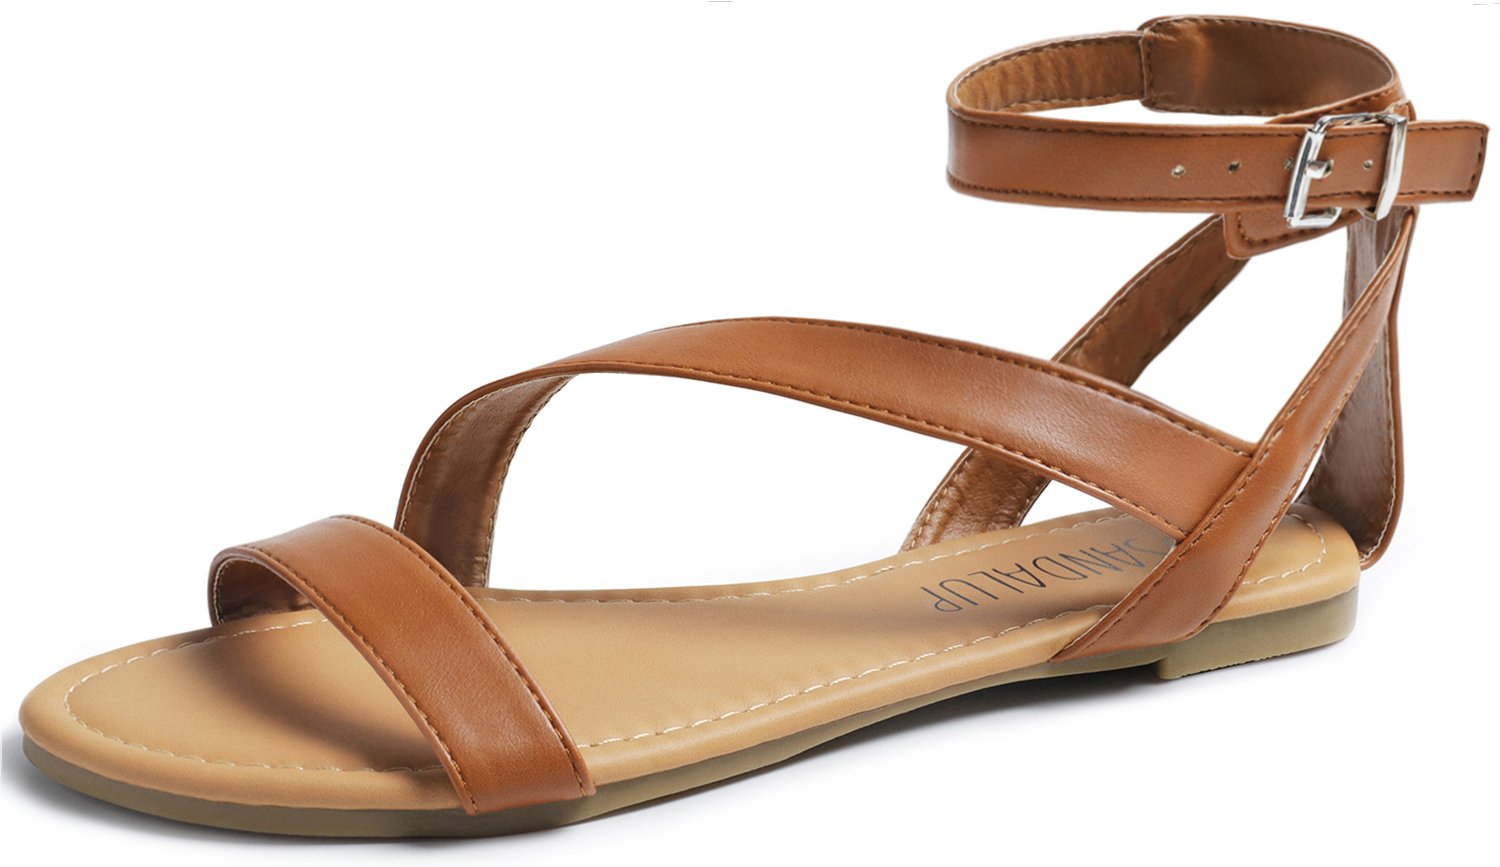 SANDALUP Women's Open Toe Oblique Band Ankle Strap with Fashion Buckle Flat Sandals Brown 08